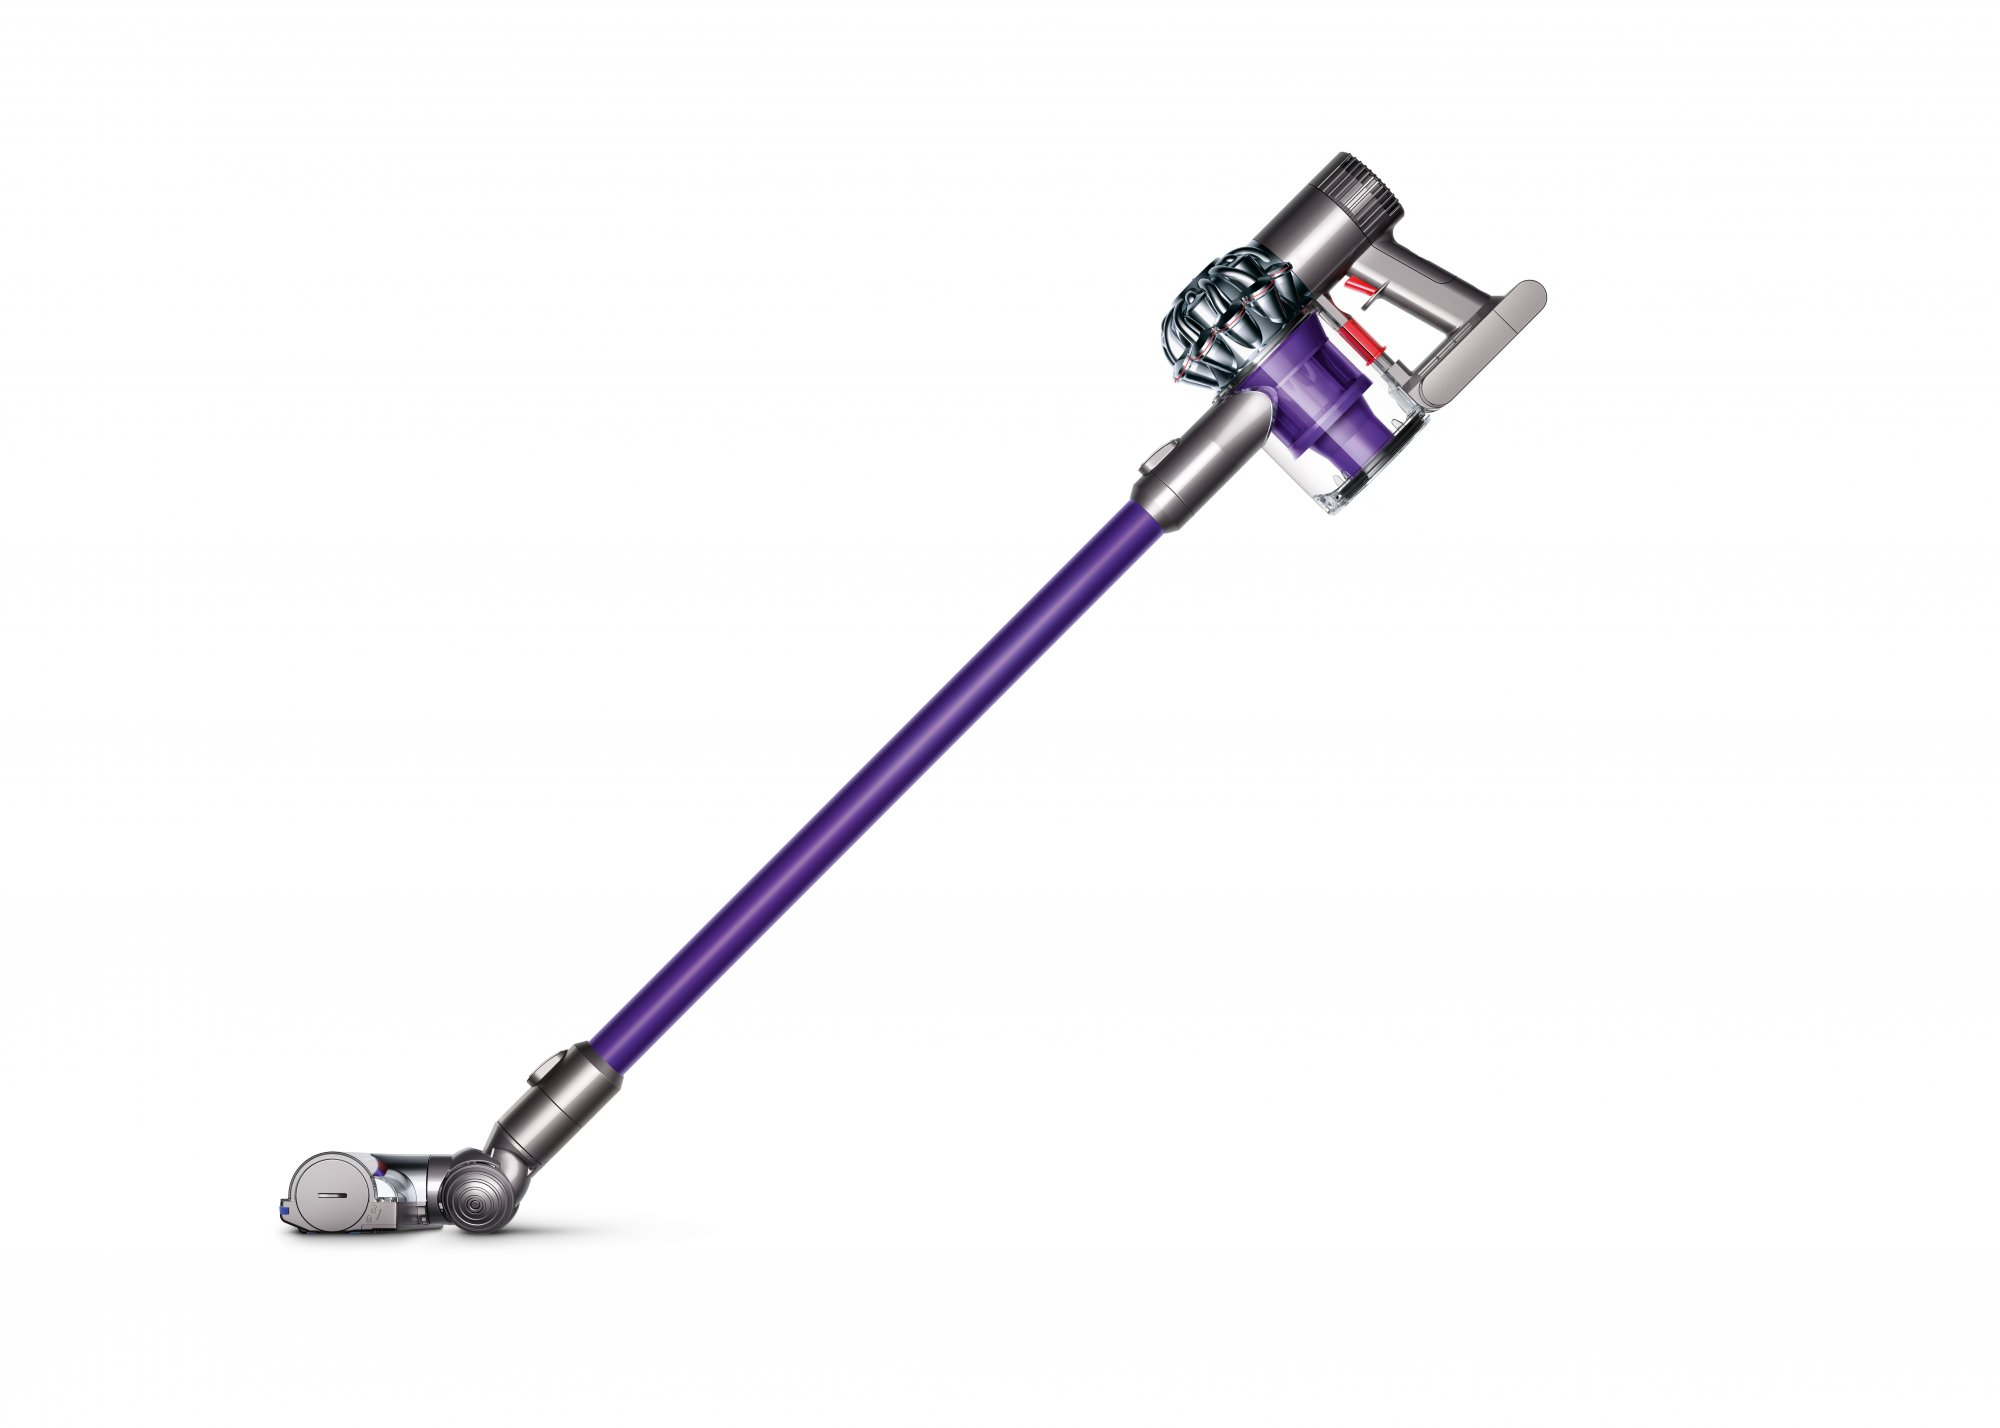 dyson v6 animal cordless vacuum 210692 01 885609004808. Black Bedroom Furniture Sets. Home Design Ideas